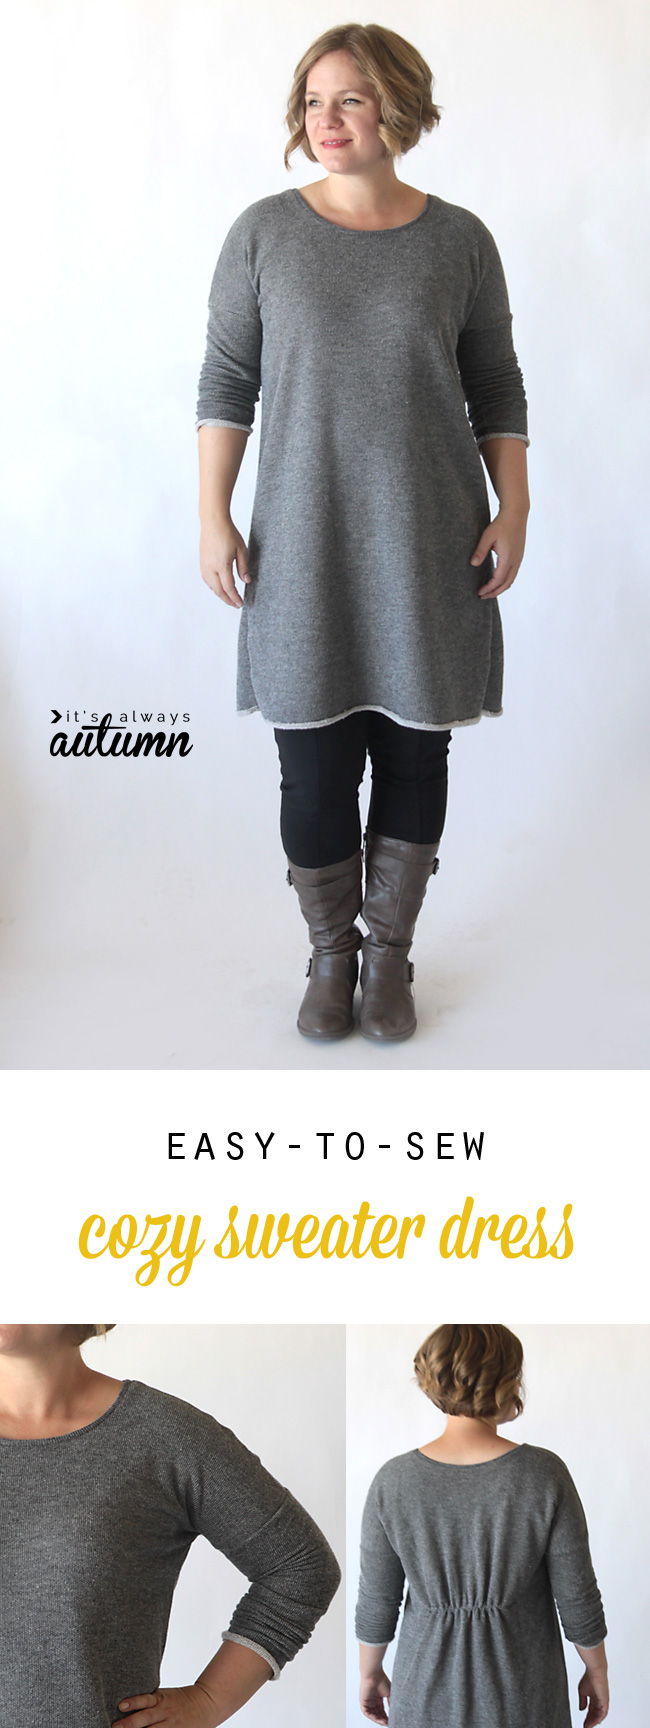 sweater-dress-tunic-easy-to-sew-how-to-make-breezy-tee-pattern-free-women-1